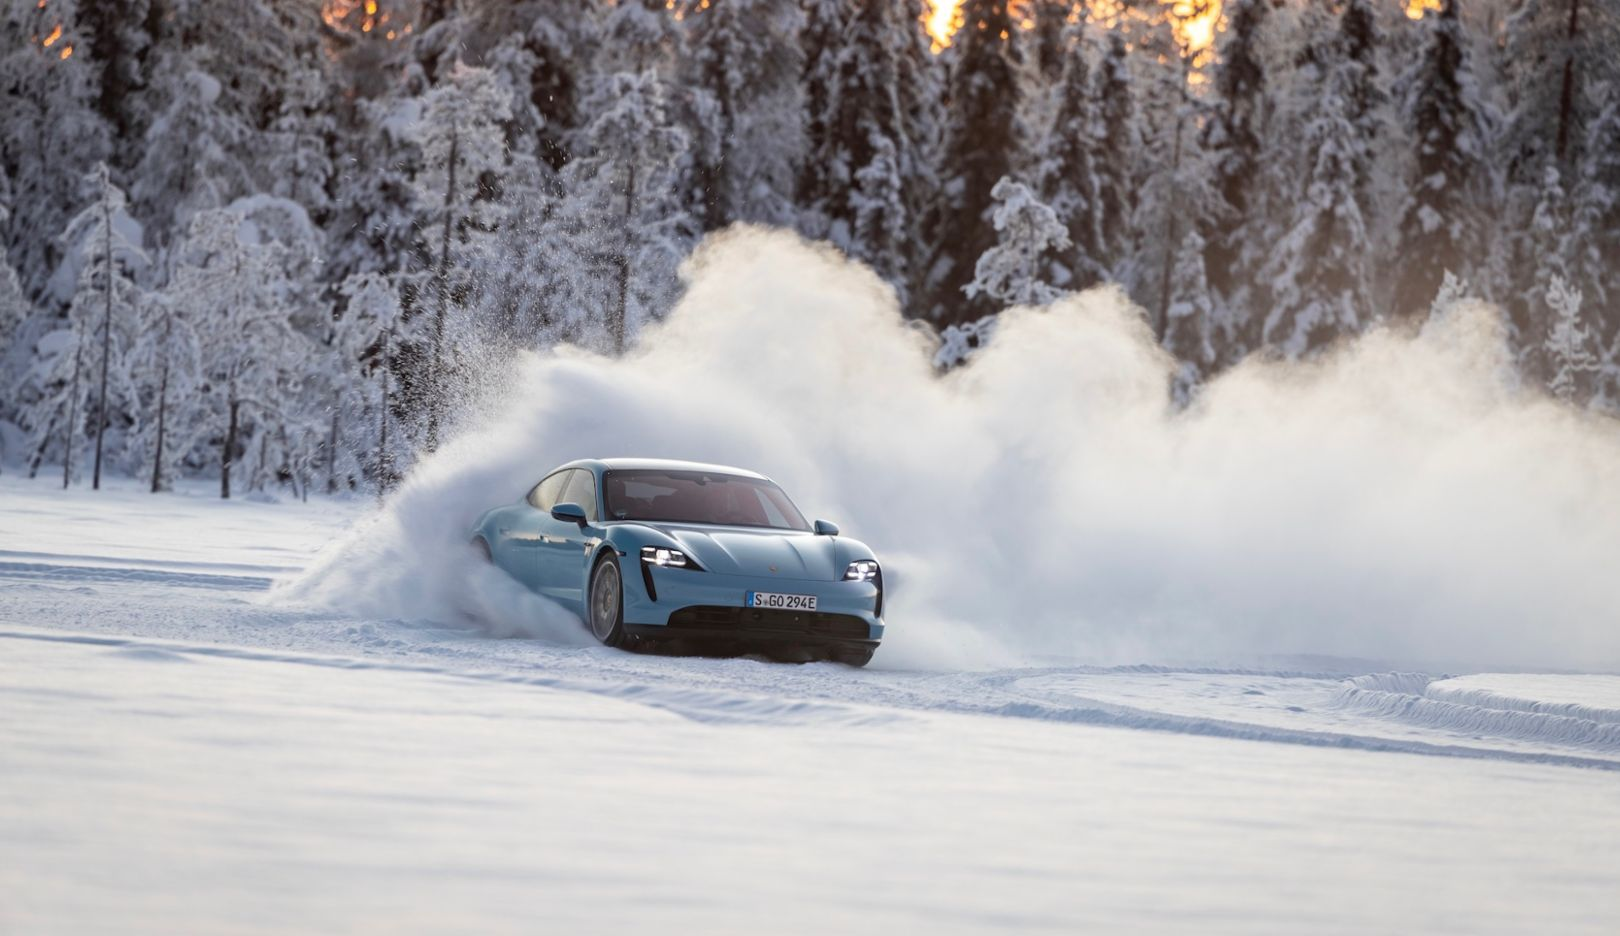 Hot on ice – the Taycan 4S in climatic extremes